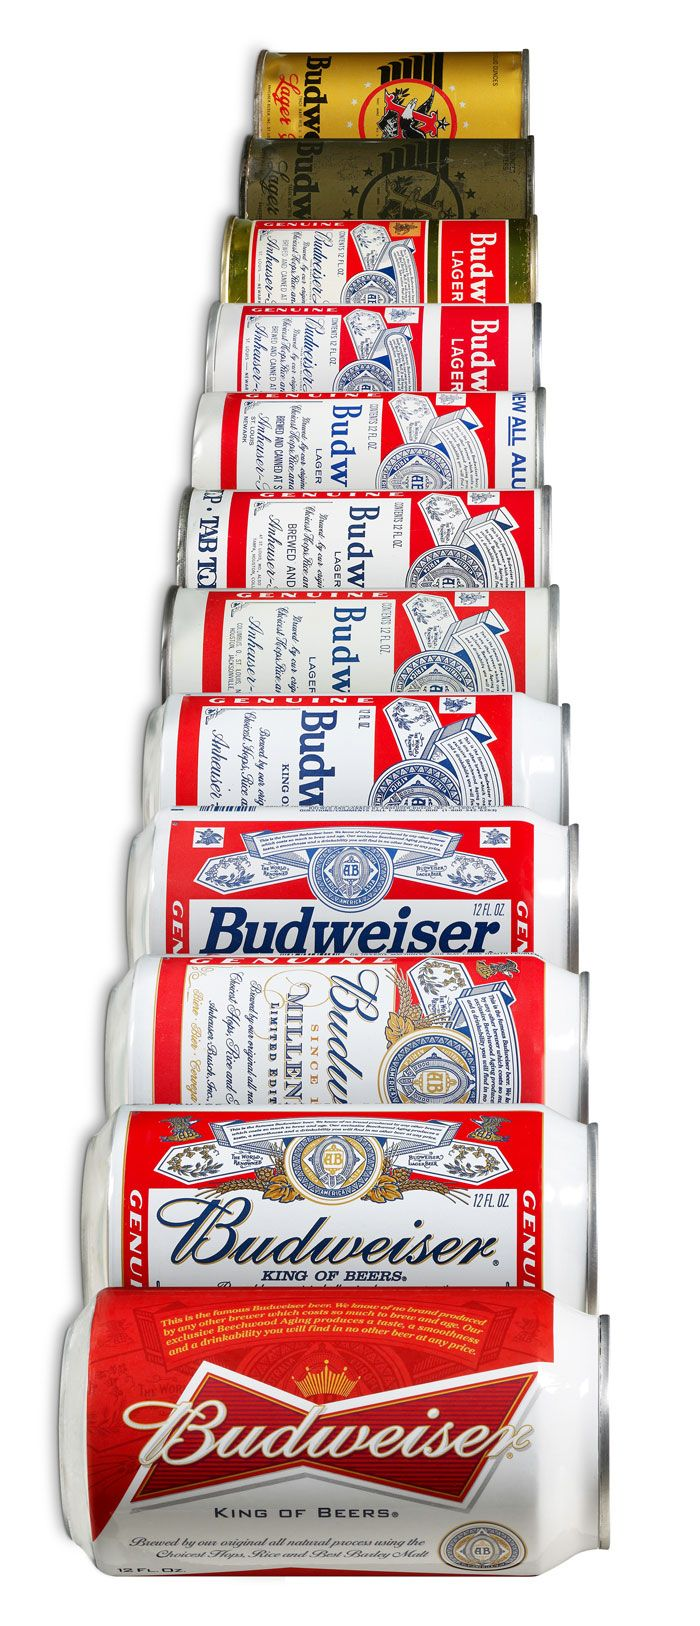 The evolution of the Budweiser beer can! #Budweiser #BeerlovesNEIndiana